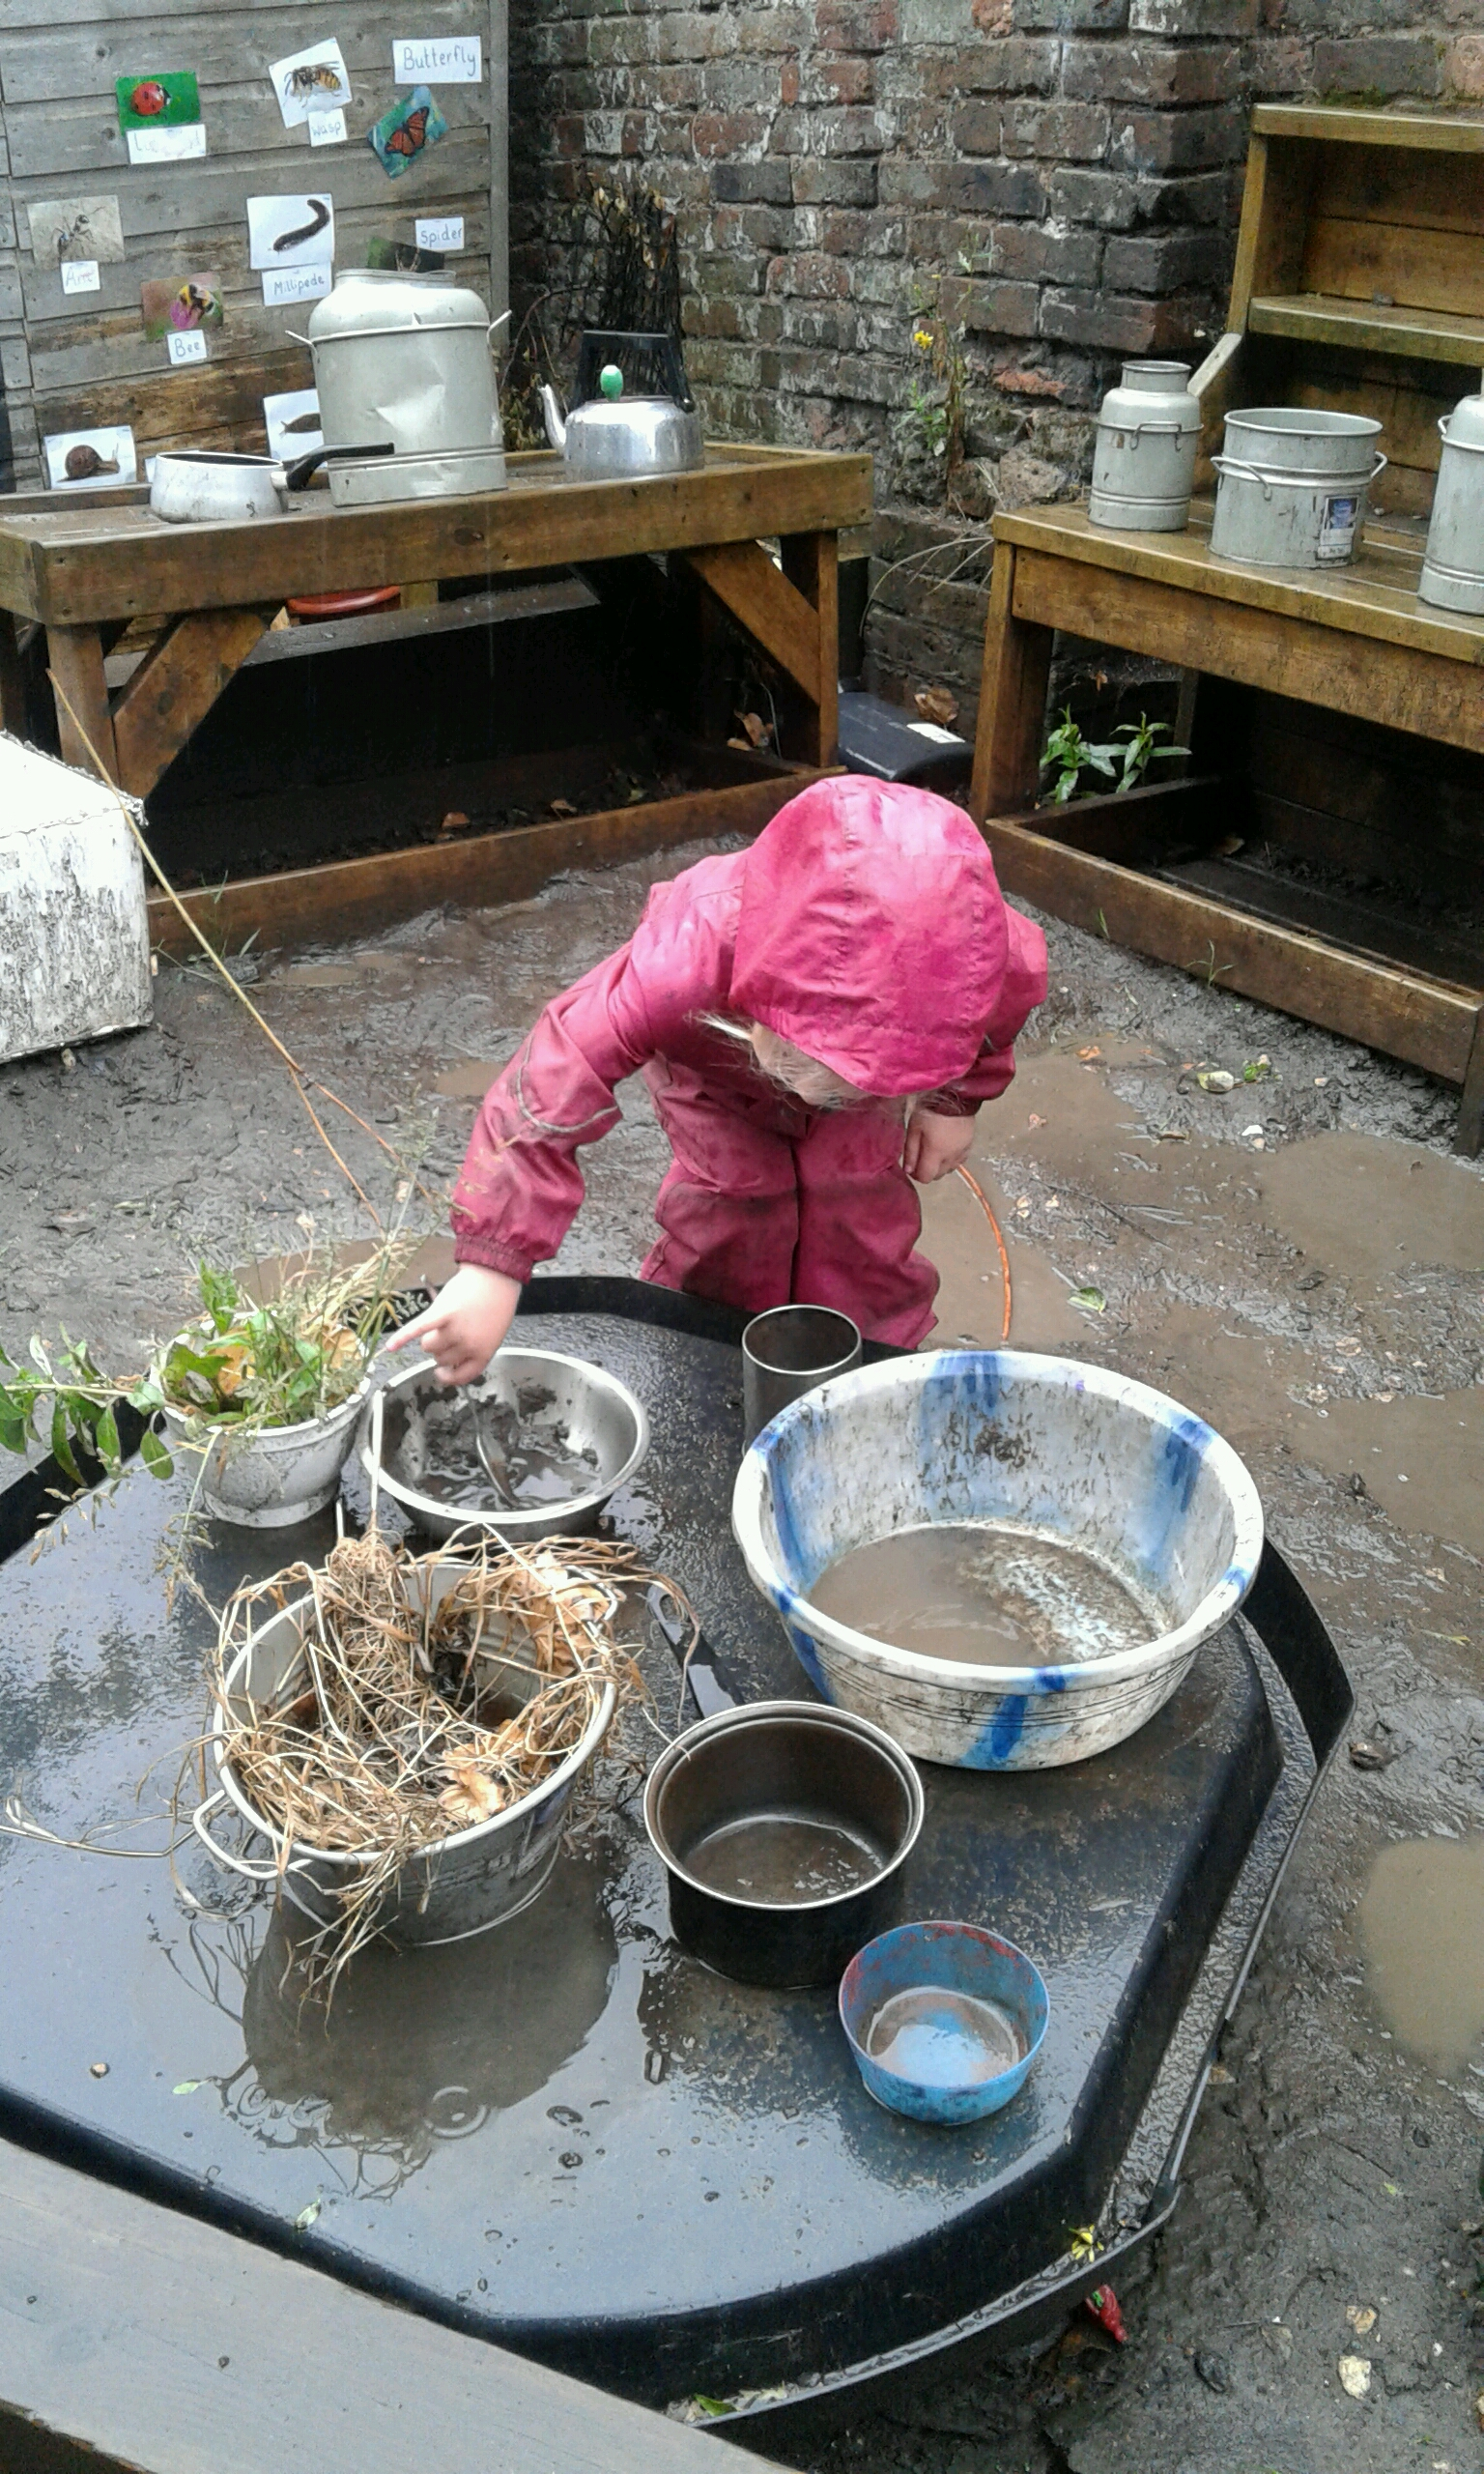 Last week the children had lots of fun in the mud kitchen outside while the rain was pouring!